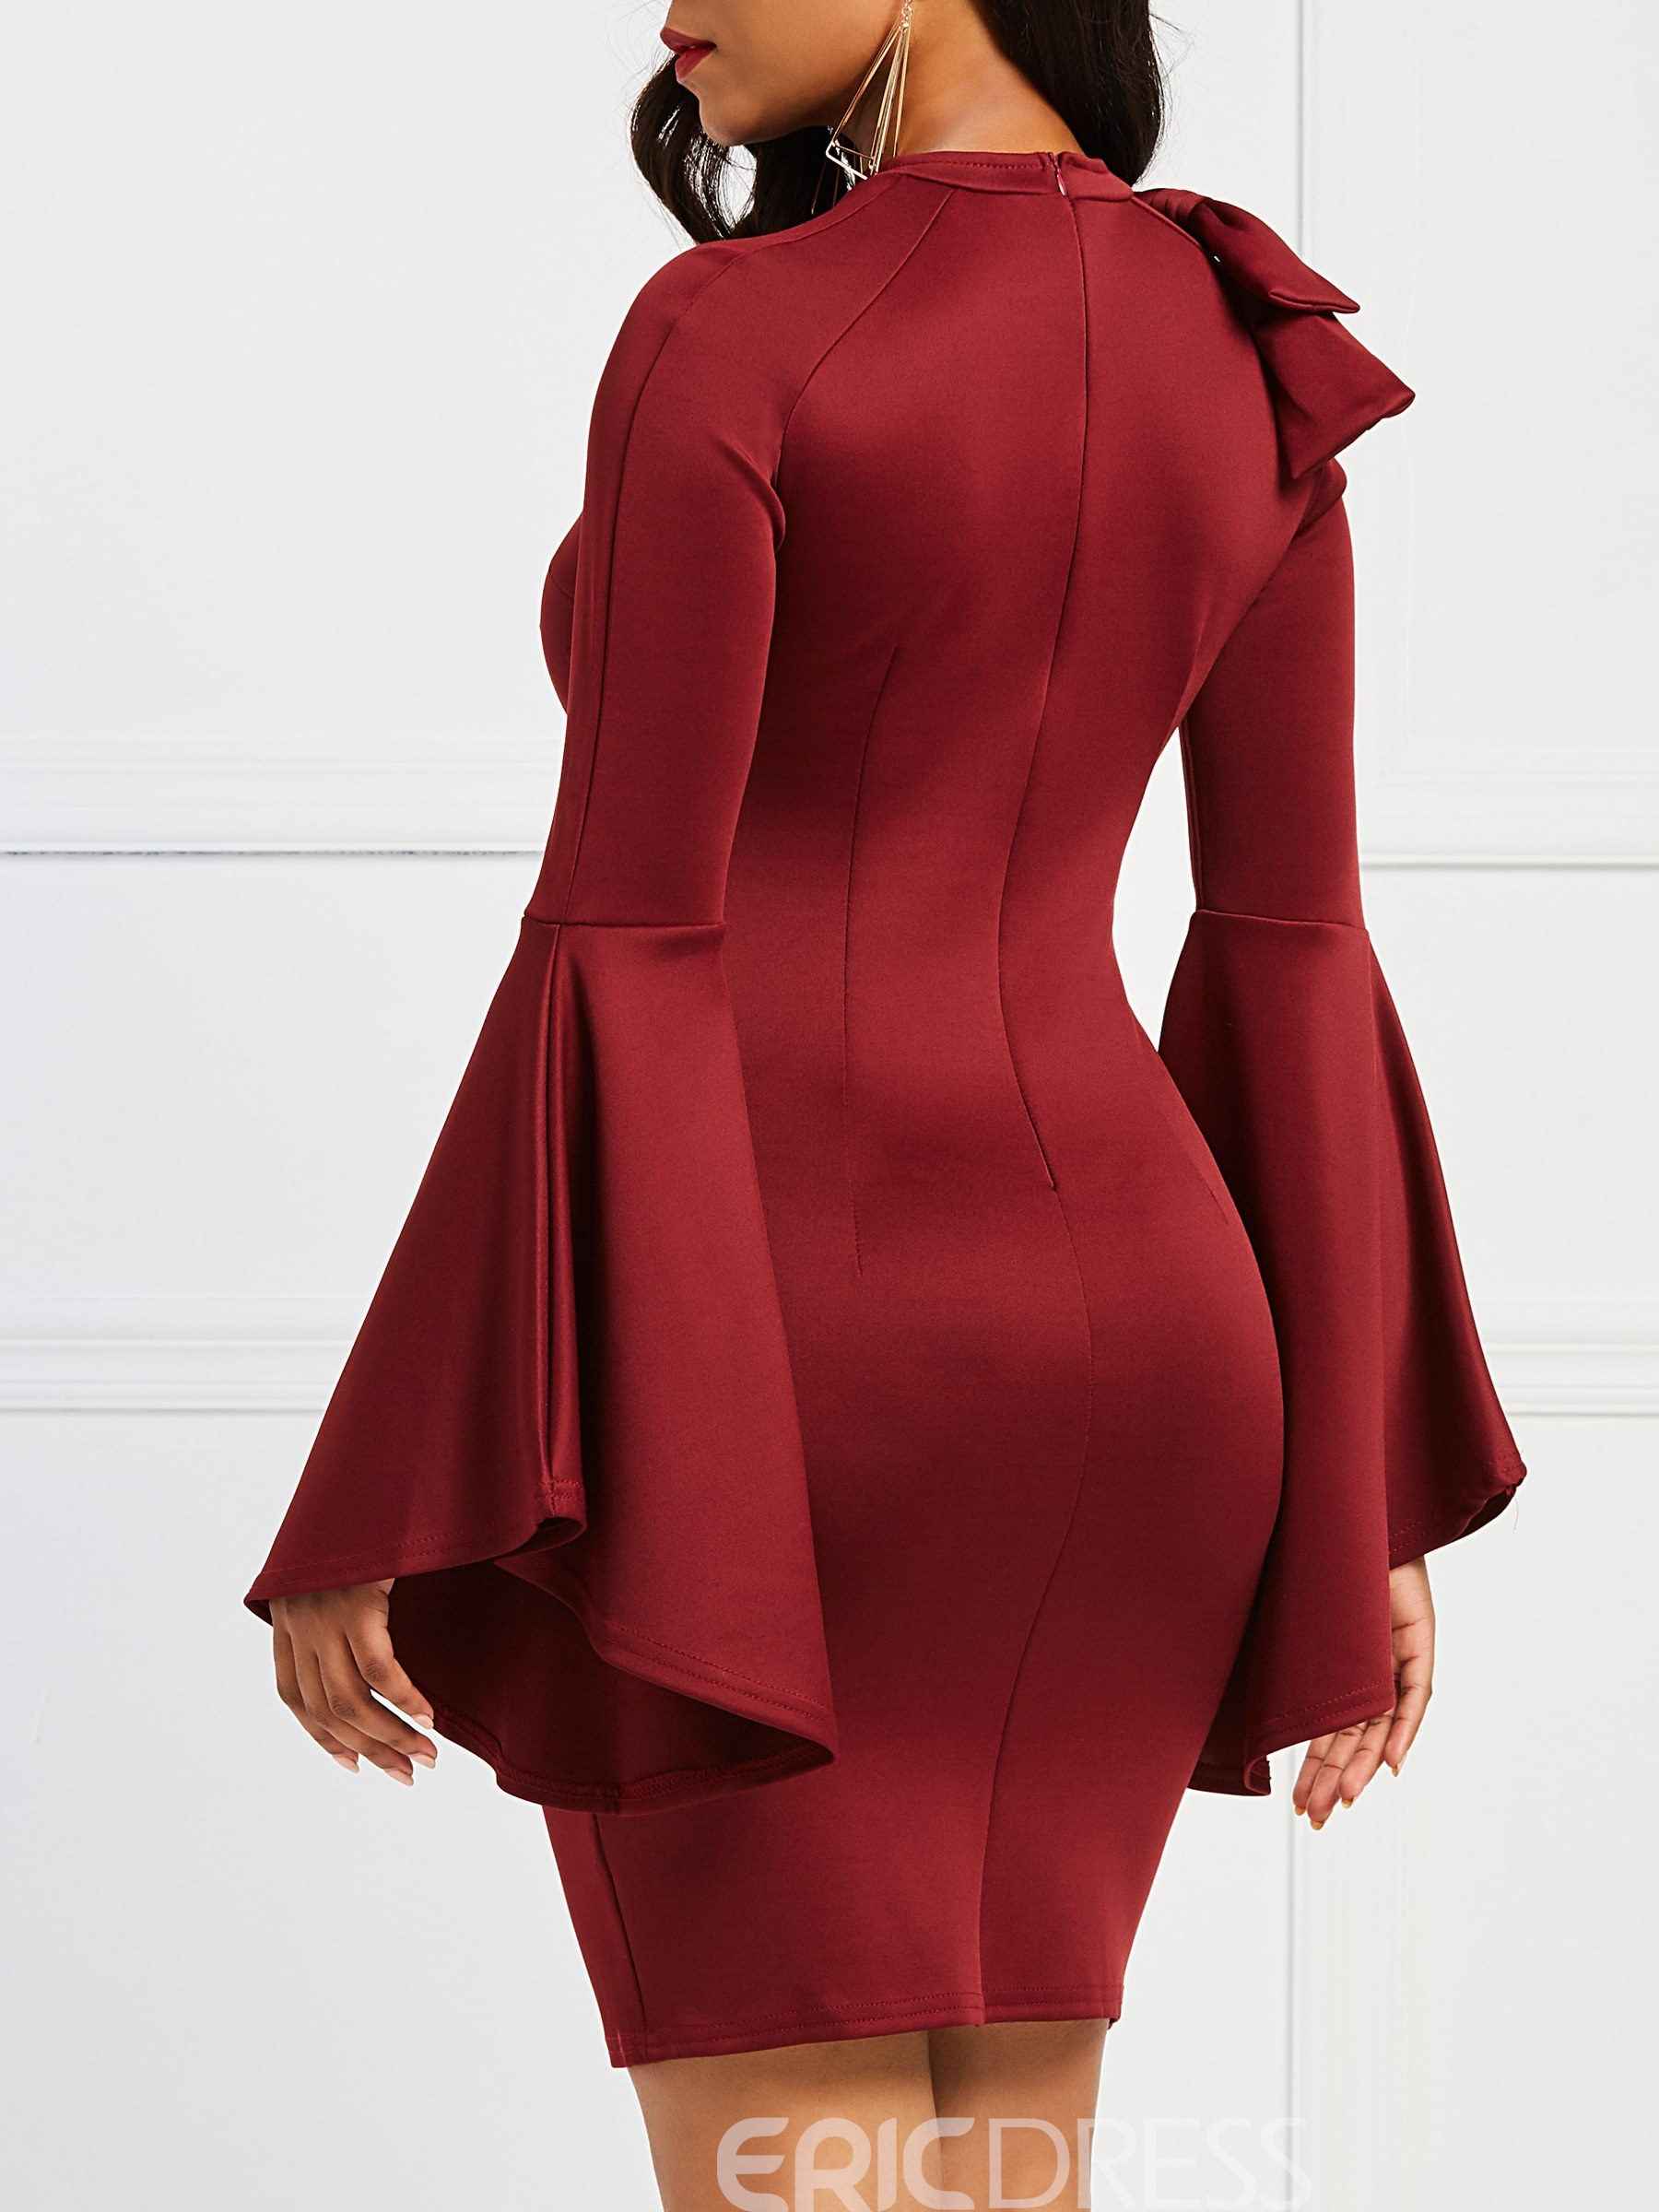 Ericdress Red Stand Collar Bowknot Patchwork Sheath Dress